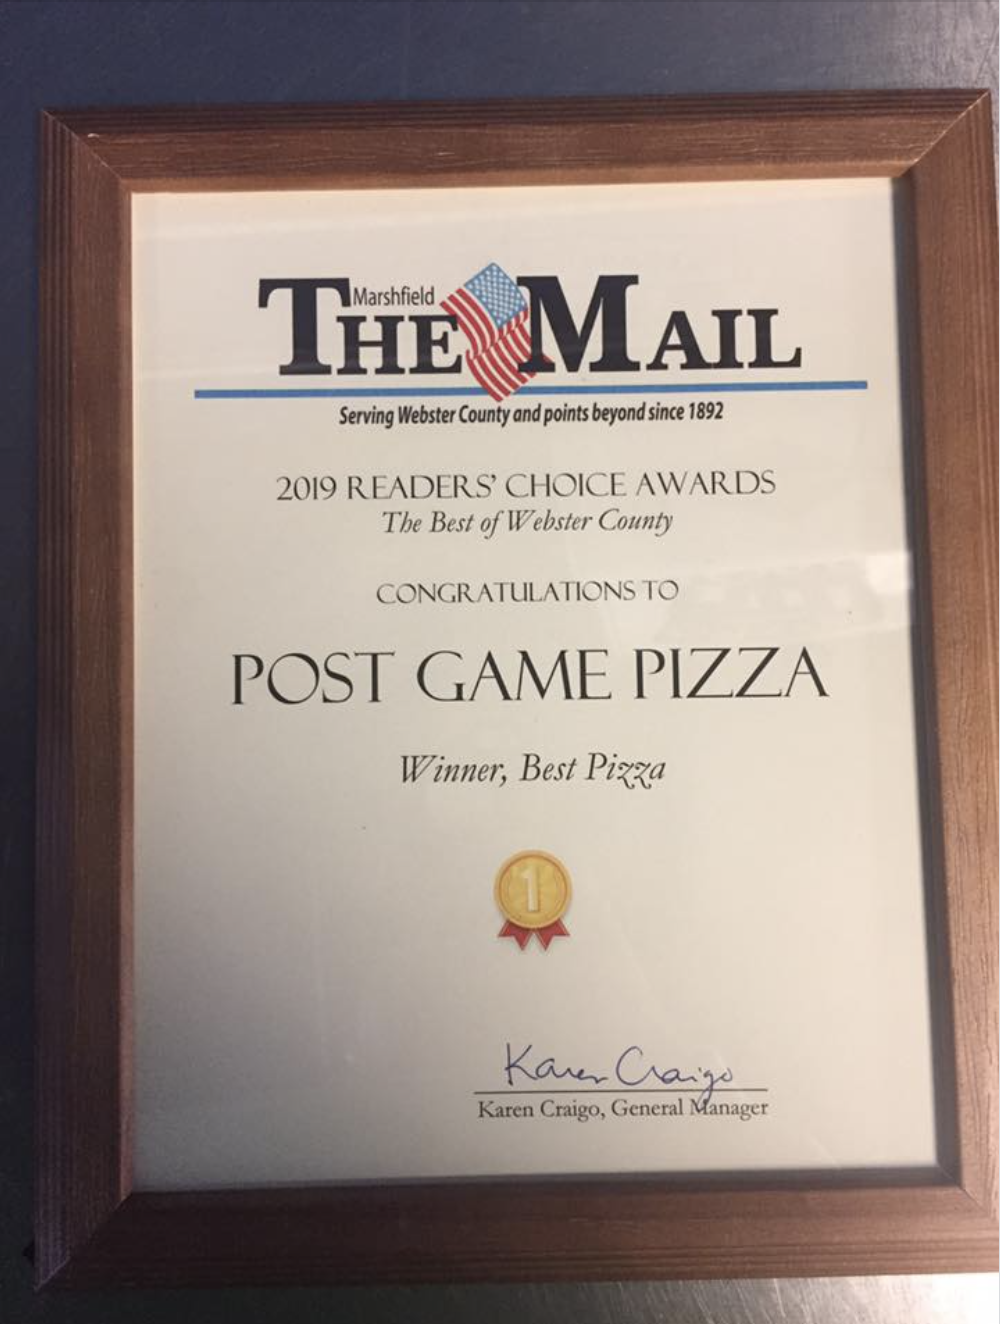 Voted Best Pizza for the third year!